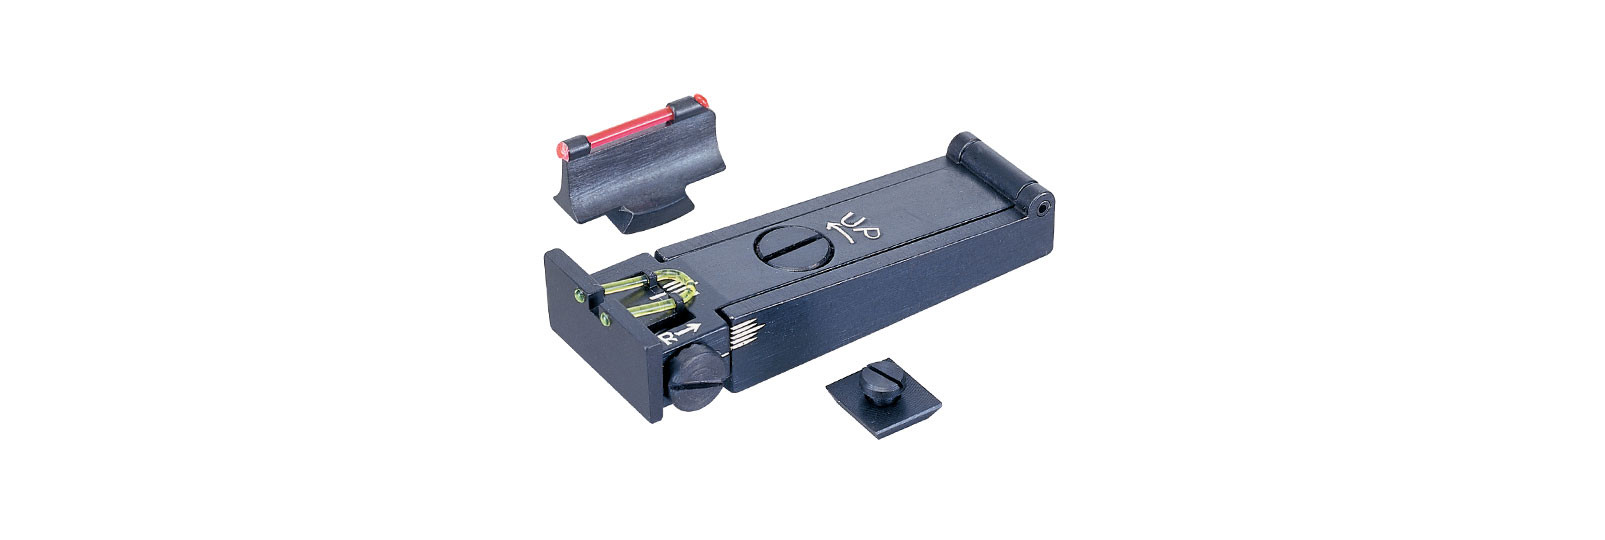 Rolling Block rifle front sight and rear sight set